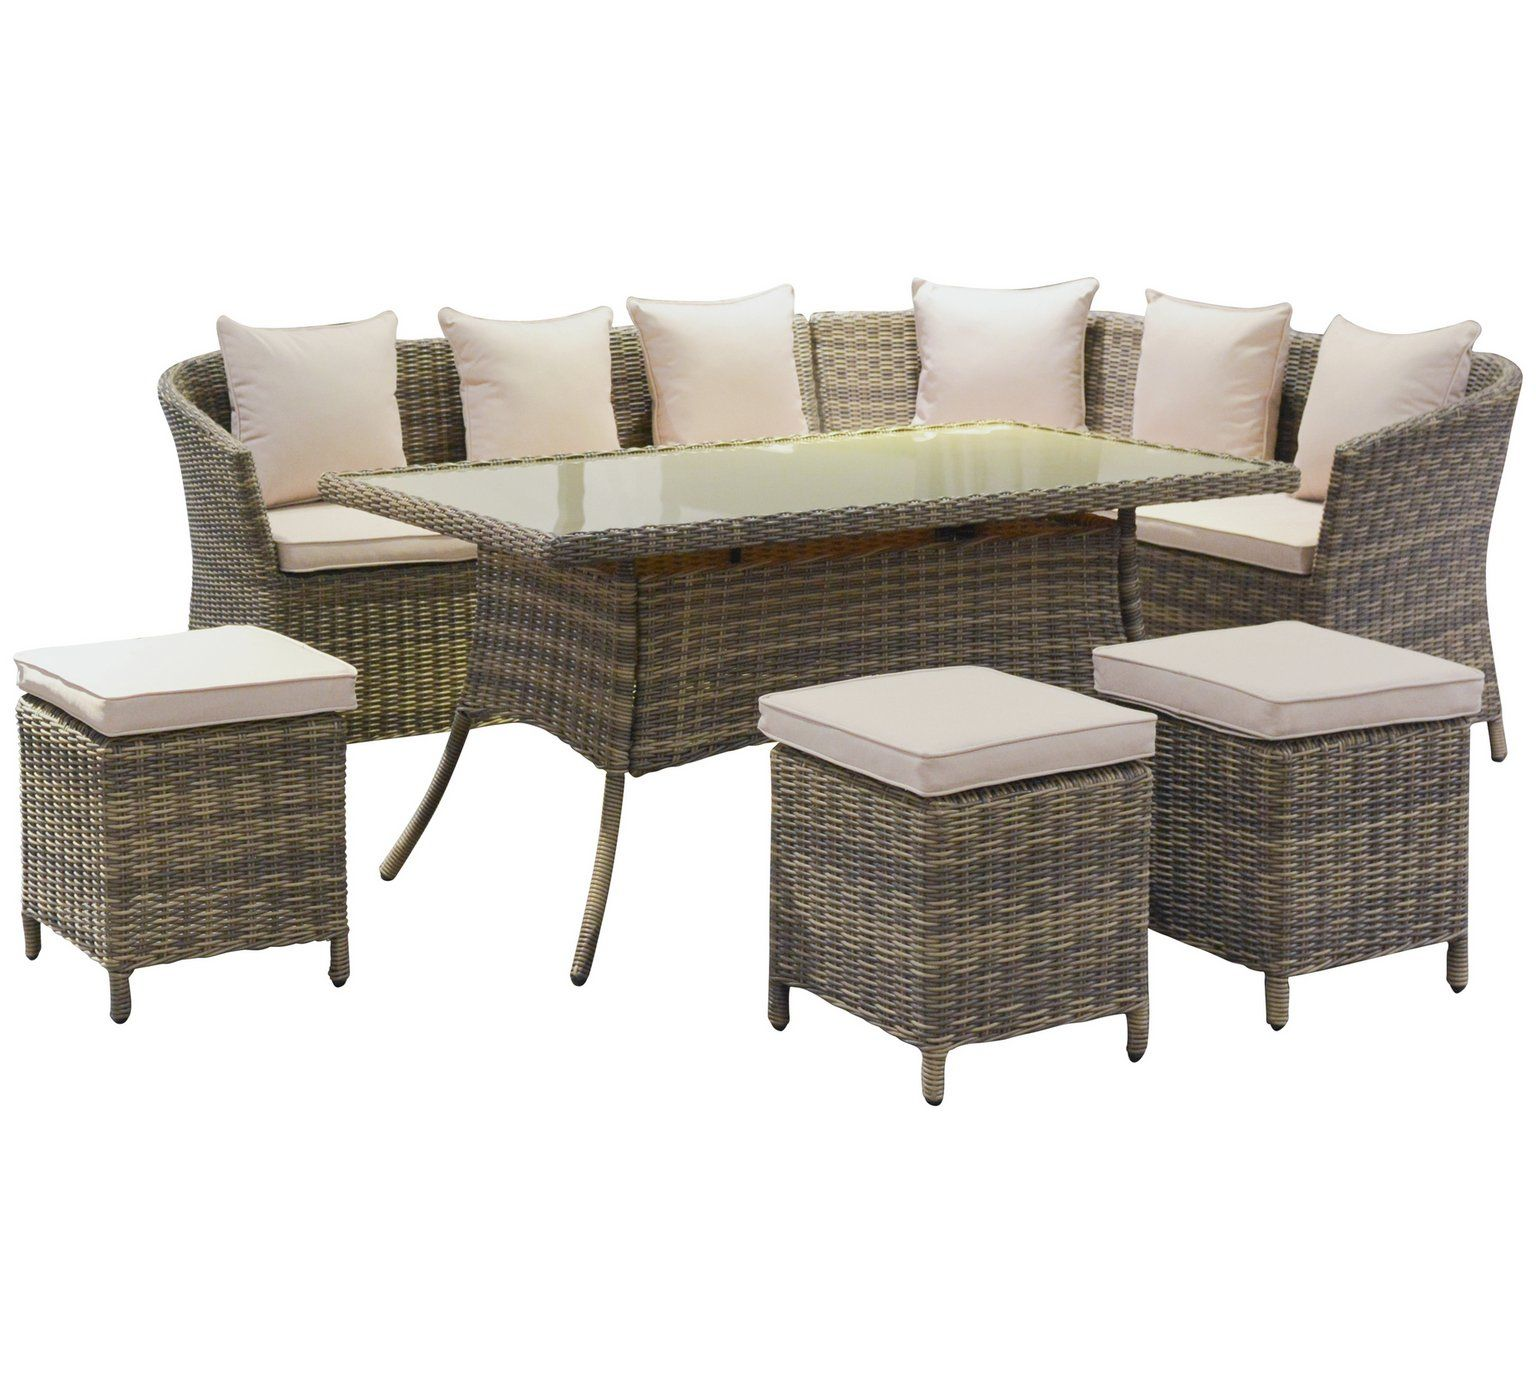 Astounding Buy Rattan Effect 8 Seater Corner Sofa Dining Table And Theyellowbook Wood Chair Design Ideas Theyellowbookinfo